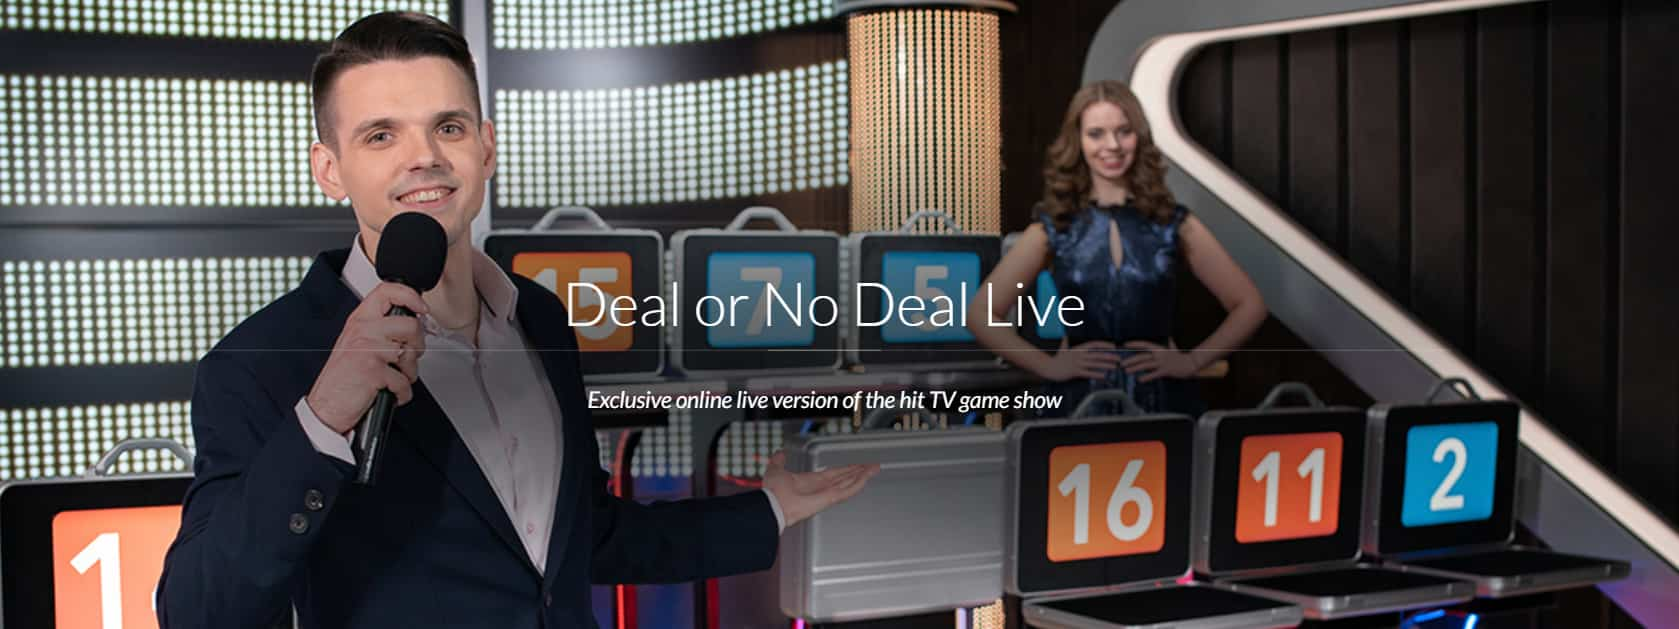 Deal or No Deal Gameshow